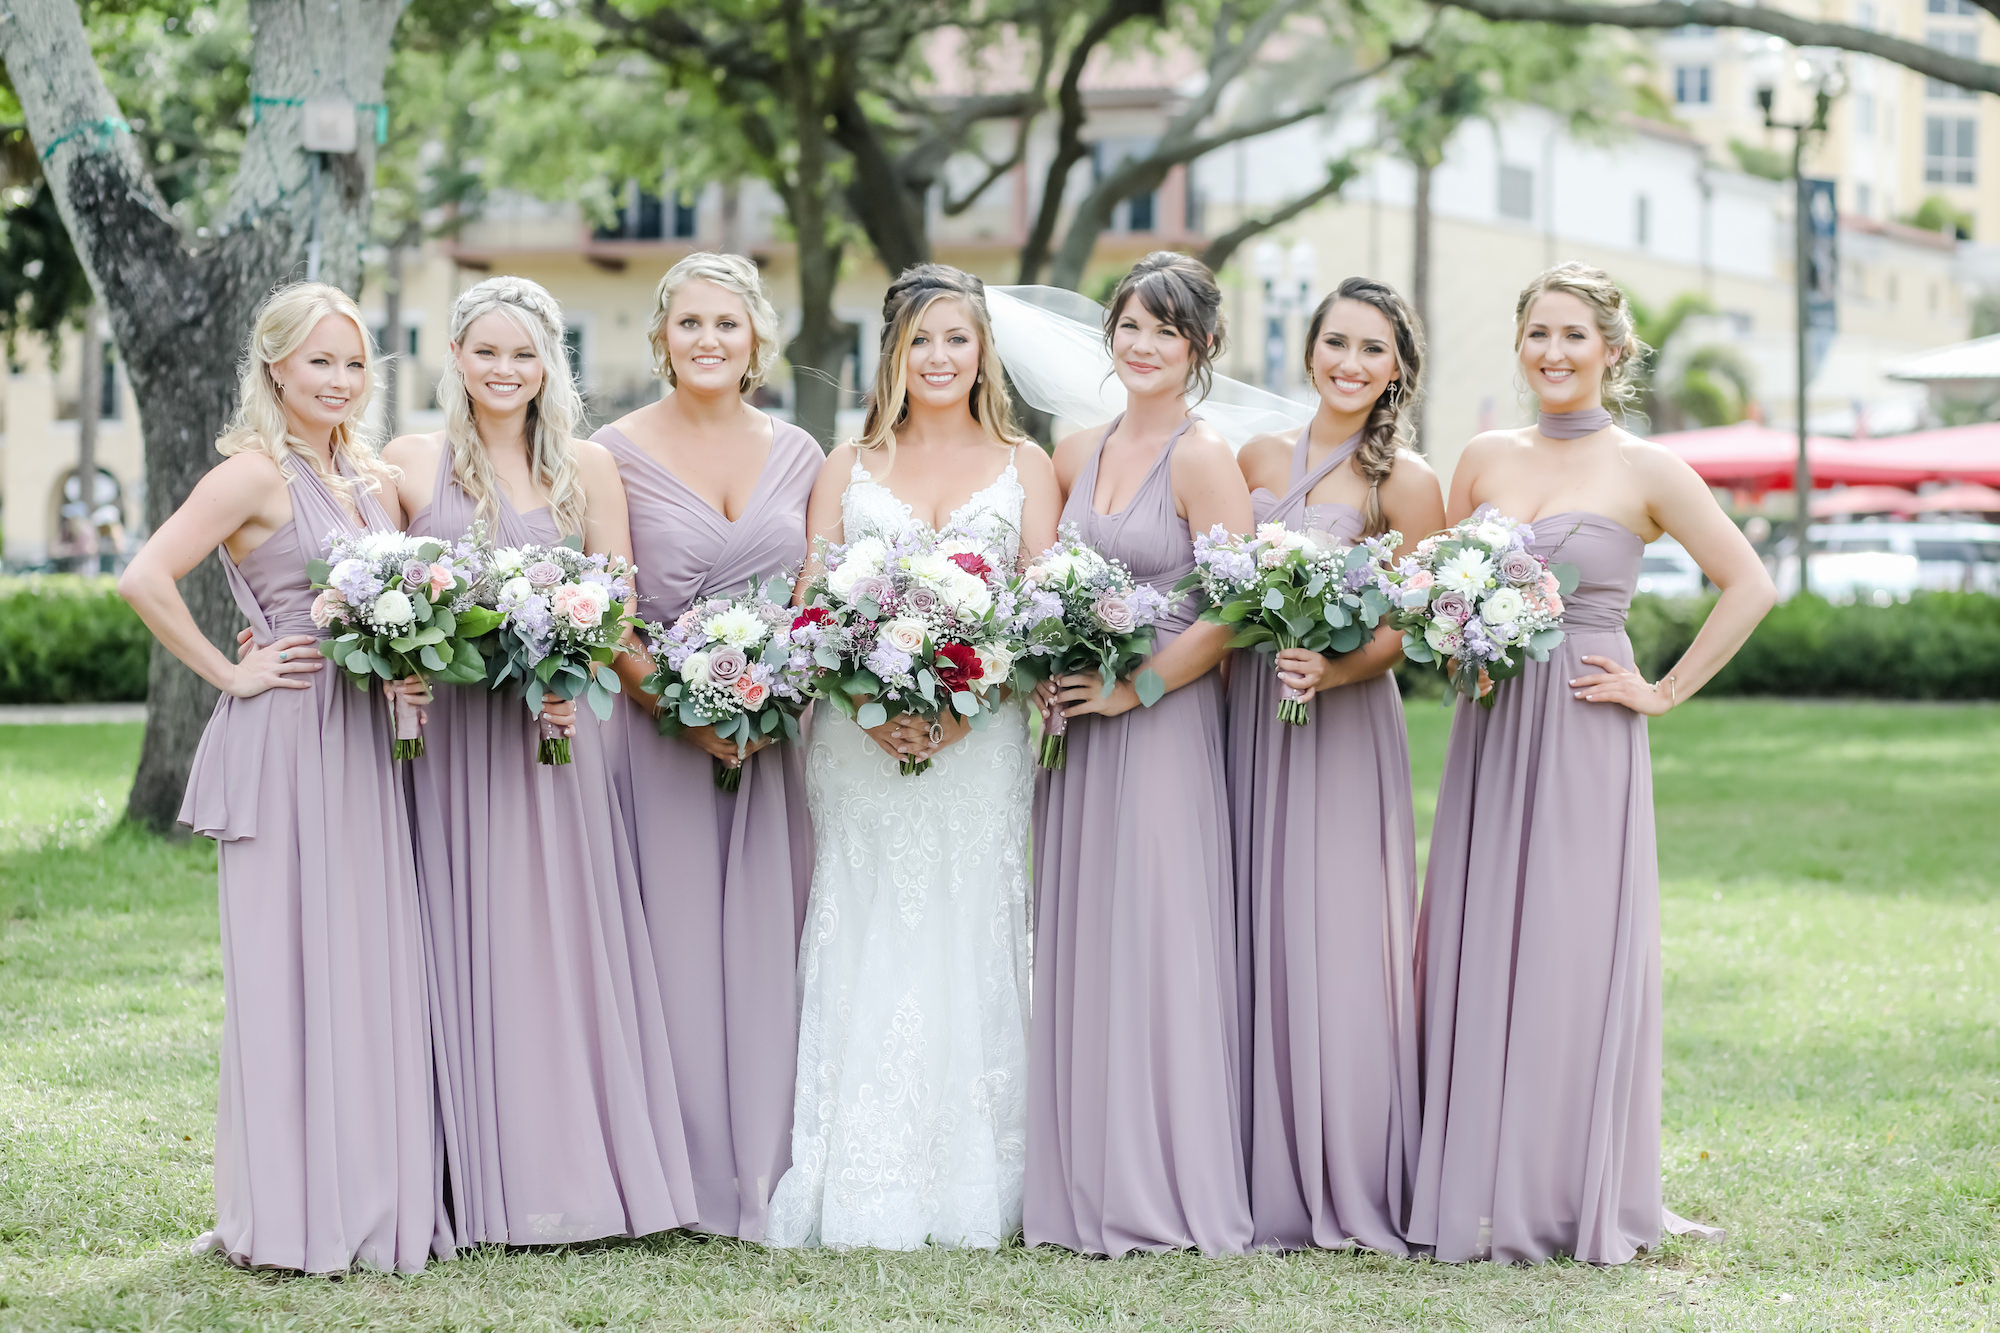 Florida Bride and Bridesmaids in Straub Park, Wearing Long Mix and Match Mauve Light Purple Dresses, Bride Holding Floral Bouquet with Red, White, Pink Roses Flowers with Greenery   Tampa Bay Hair and Makeup Artist Michele Renee The Studio   Florida Wedding Photographer Lifelong Photography Studio   Planner Blue Skies Weddings and Events